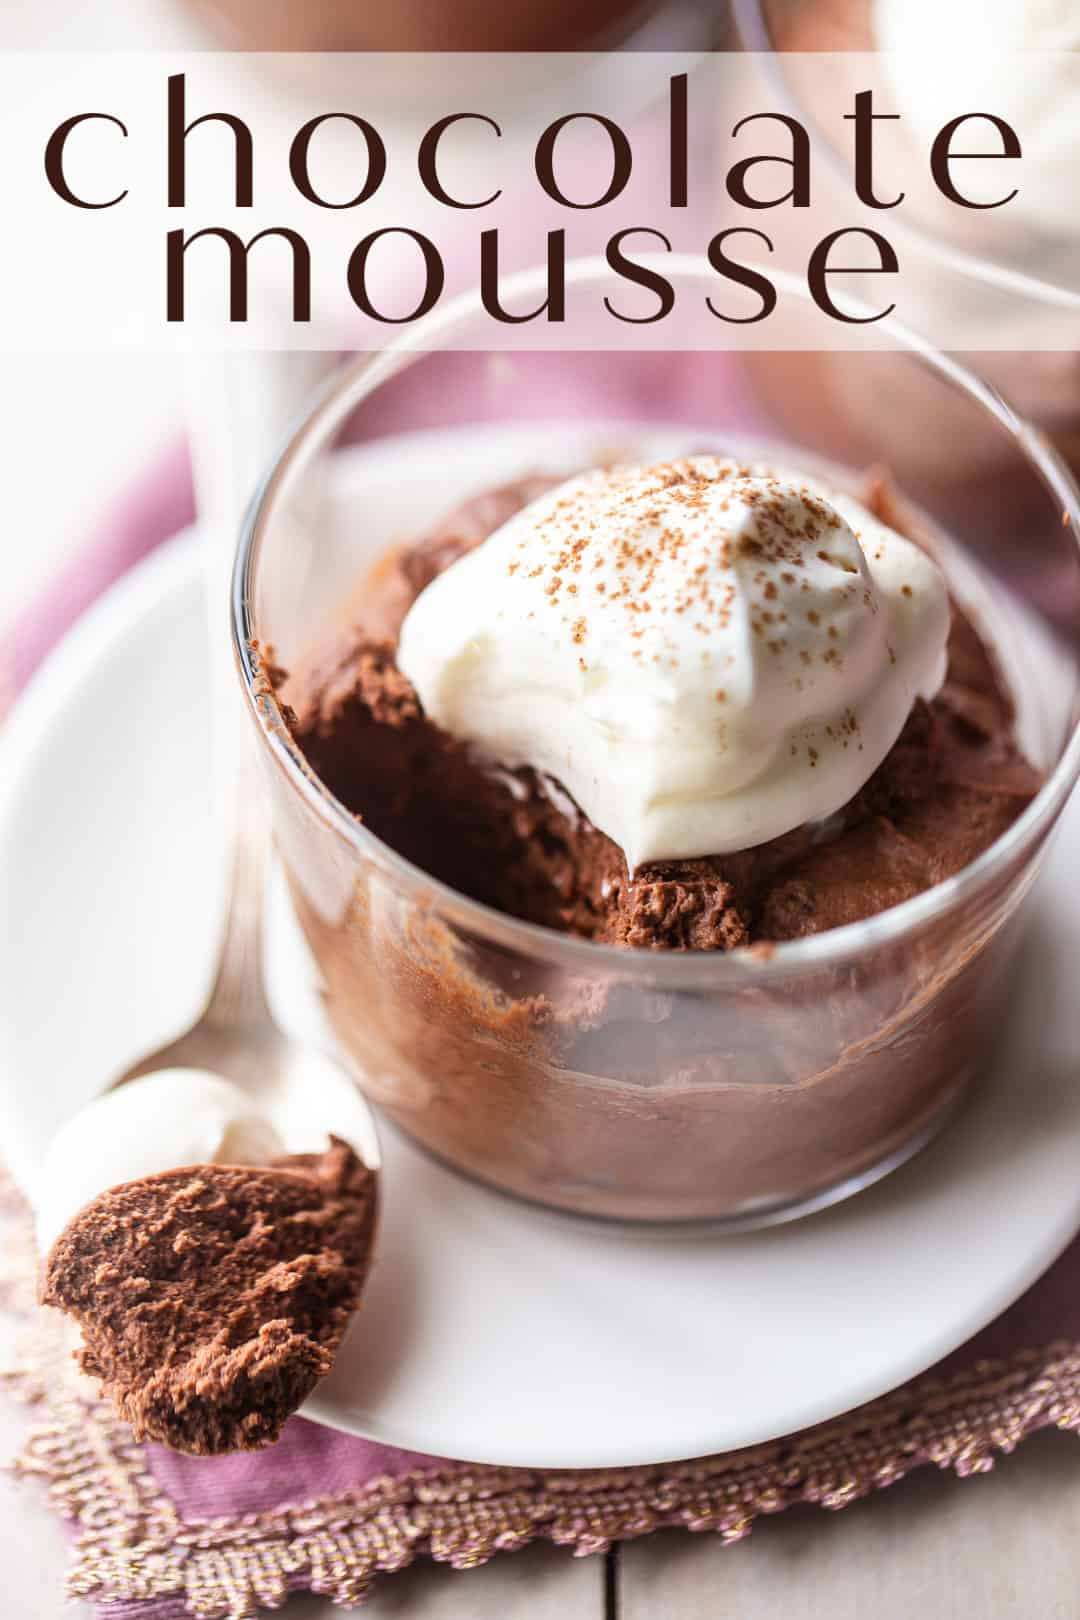 17 day diet desserts chocolate mousse